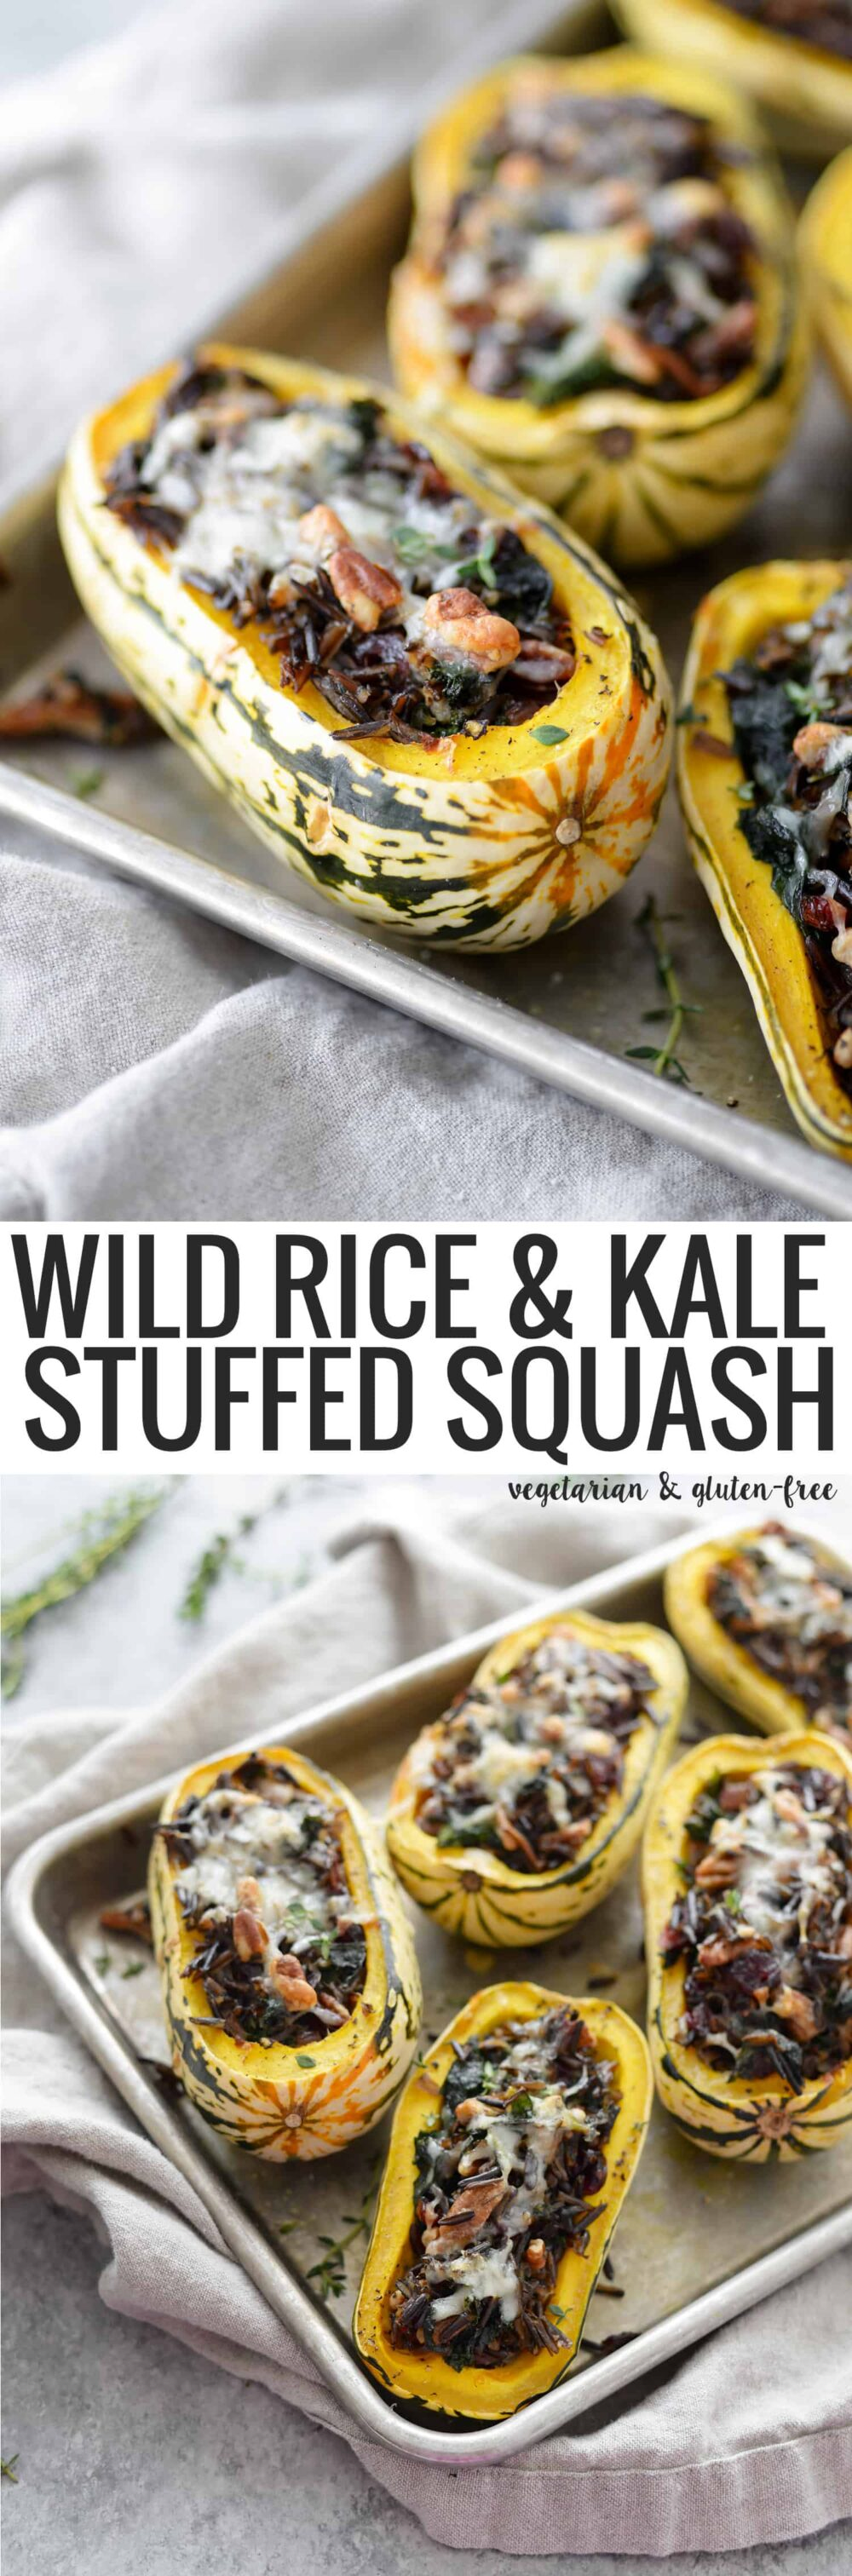 Wild Rice, Kale and Cranberry Stuffed Delicata Squash. The perfect vegetarian main dish for thanksgiving. Roasted Squash stuffed with wild rice, kale, pecans, cranberries and topped with cheese. Gluten-free | #thanksgiving #glutenfree #squash #healthy #vegetarian www.delishknowledge.com